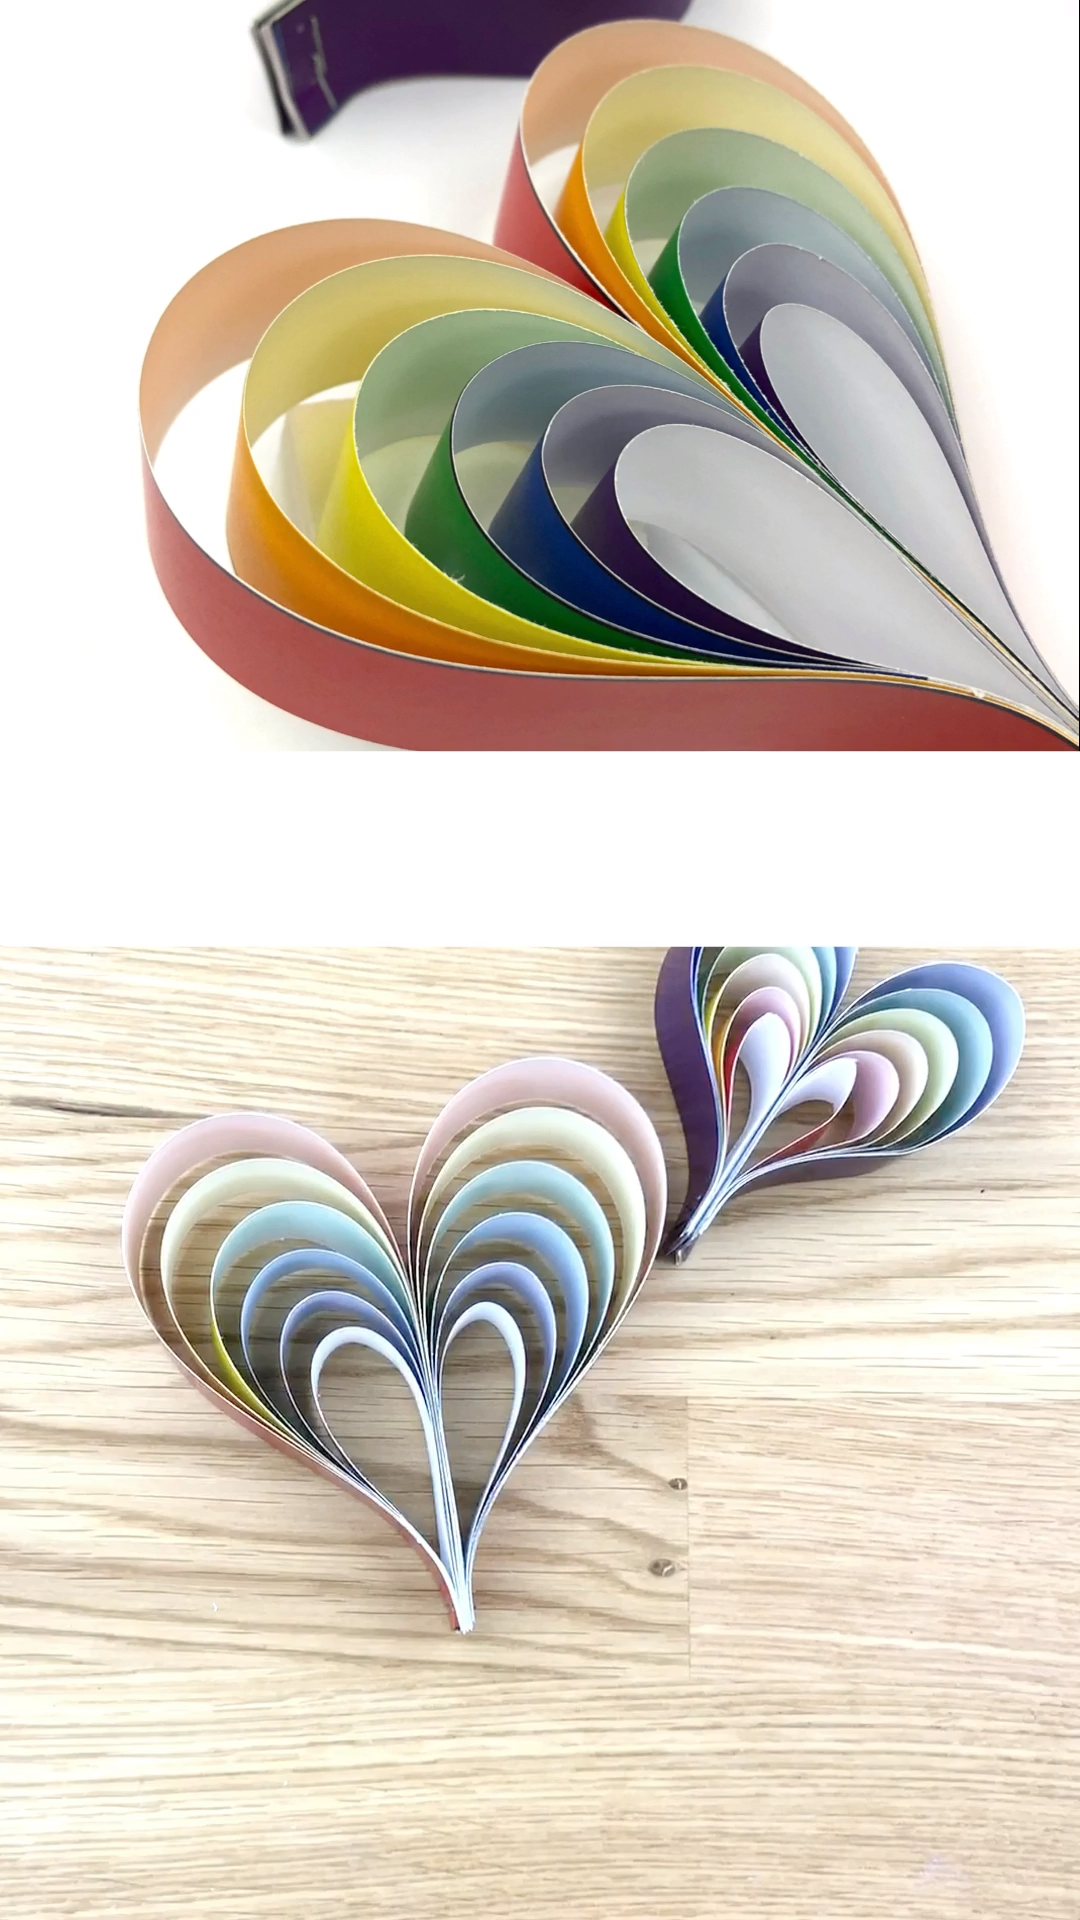 Rainbow Paper Heart Craft Template For Kids Paper Mobile Craft